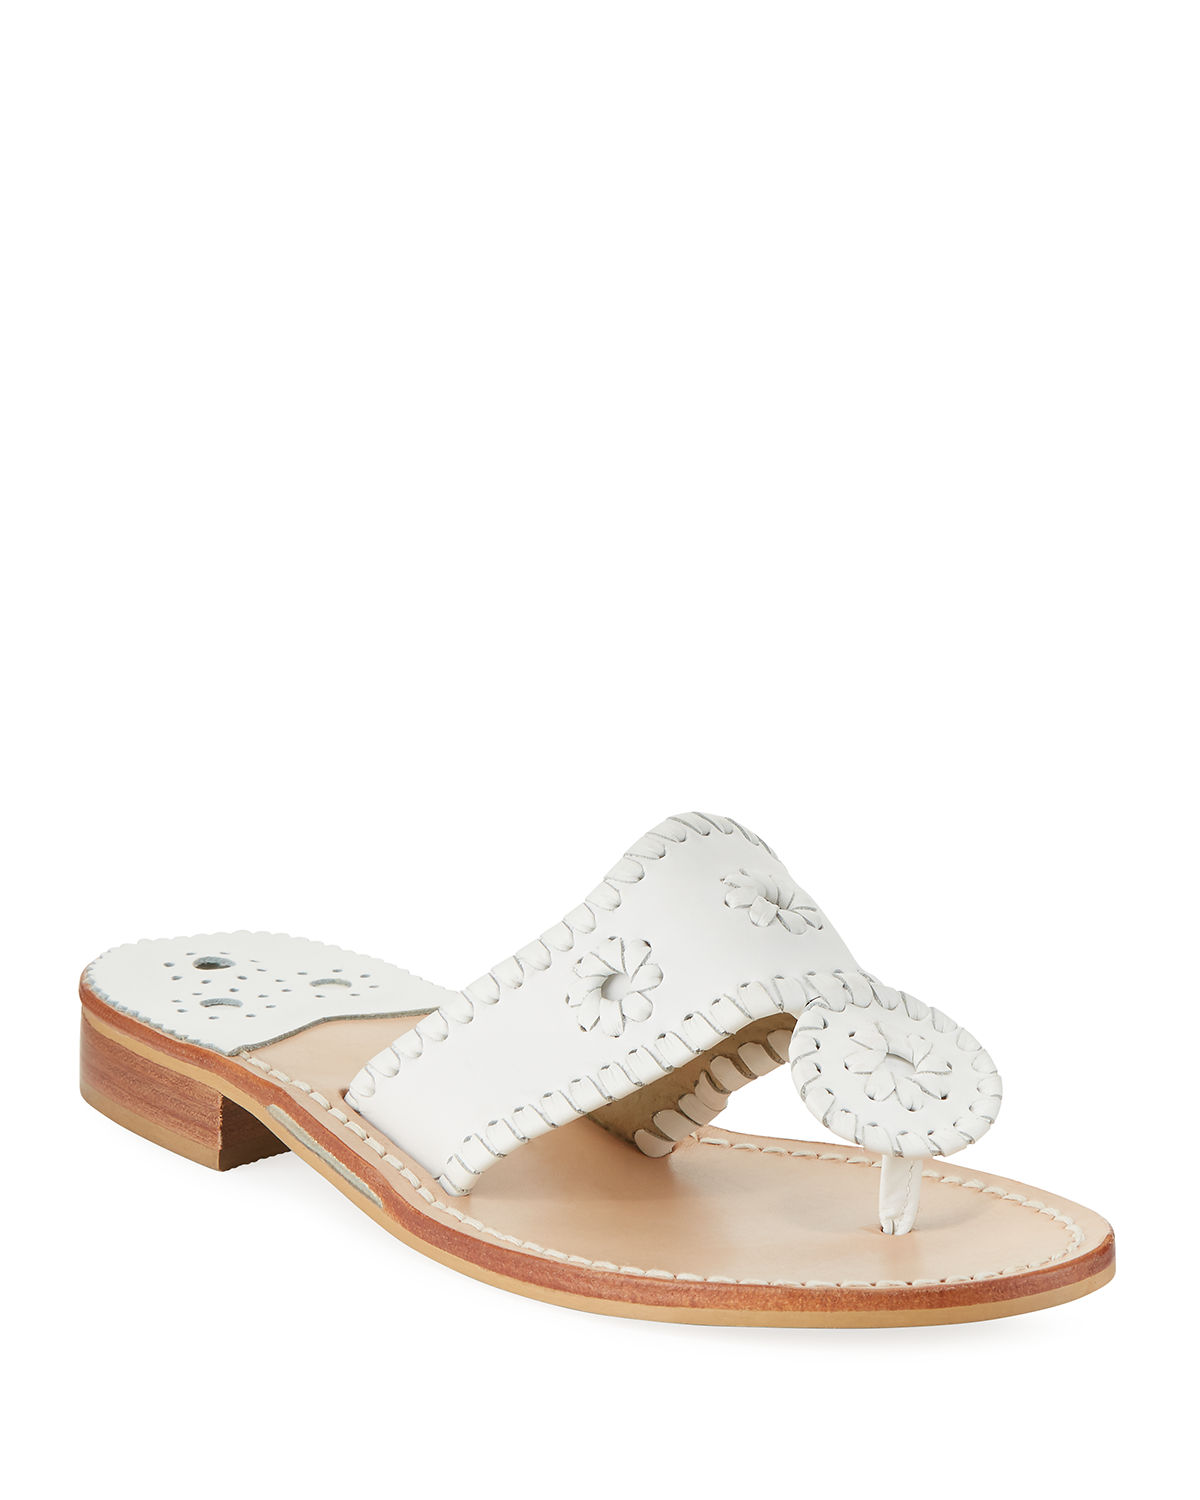 ddaed982a19 Jack Rogers Jacks Flat Thong Sandals